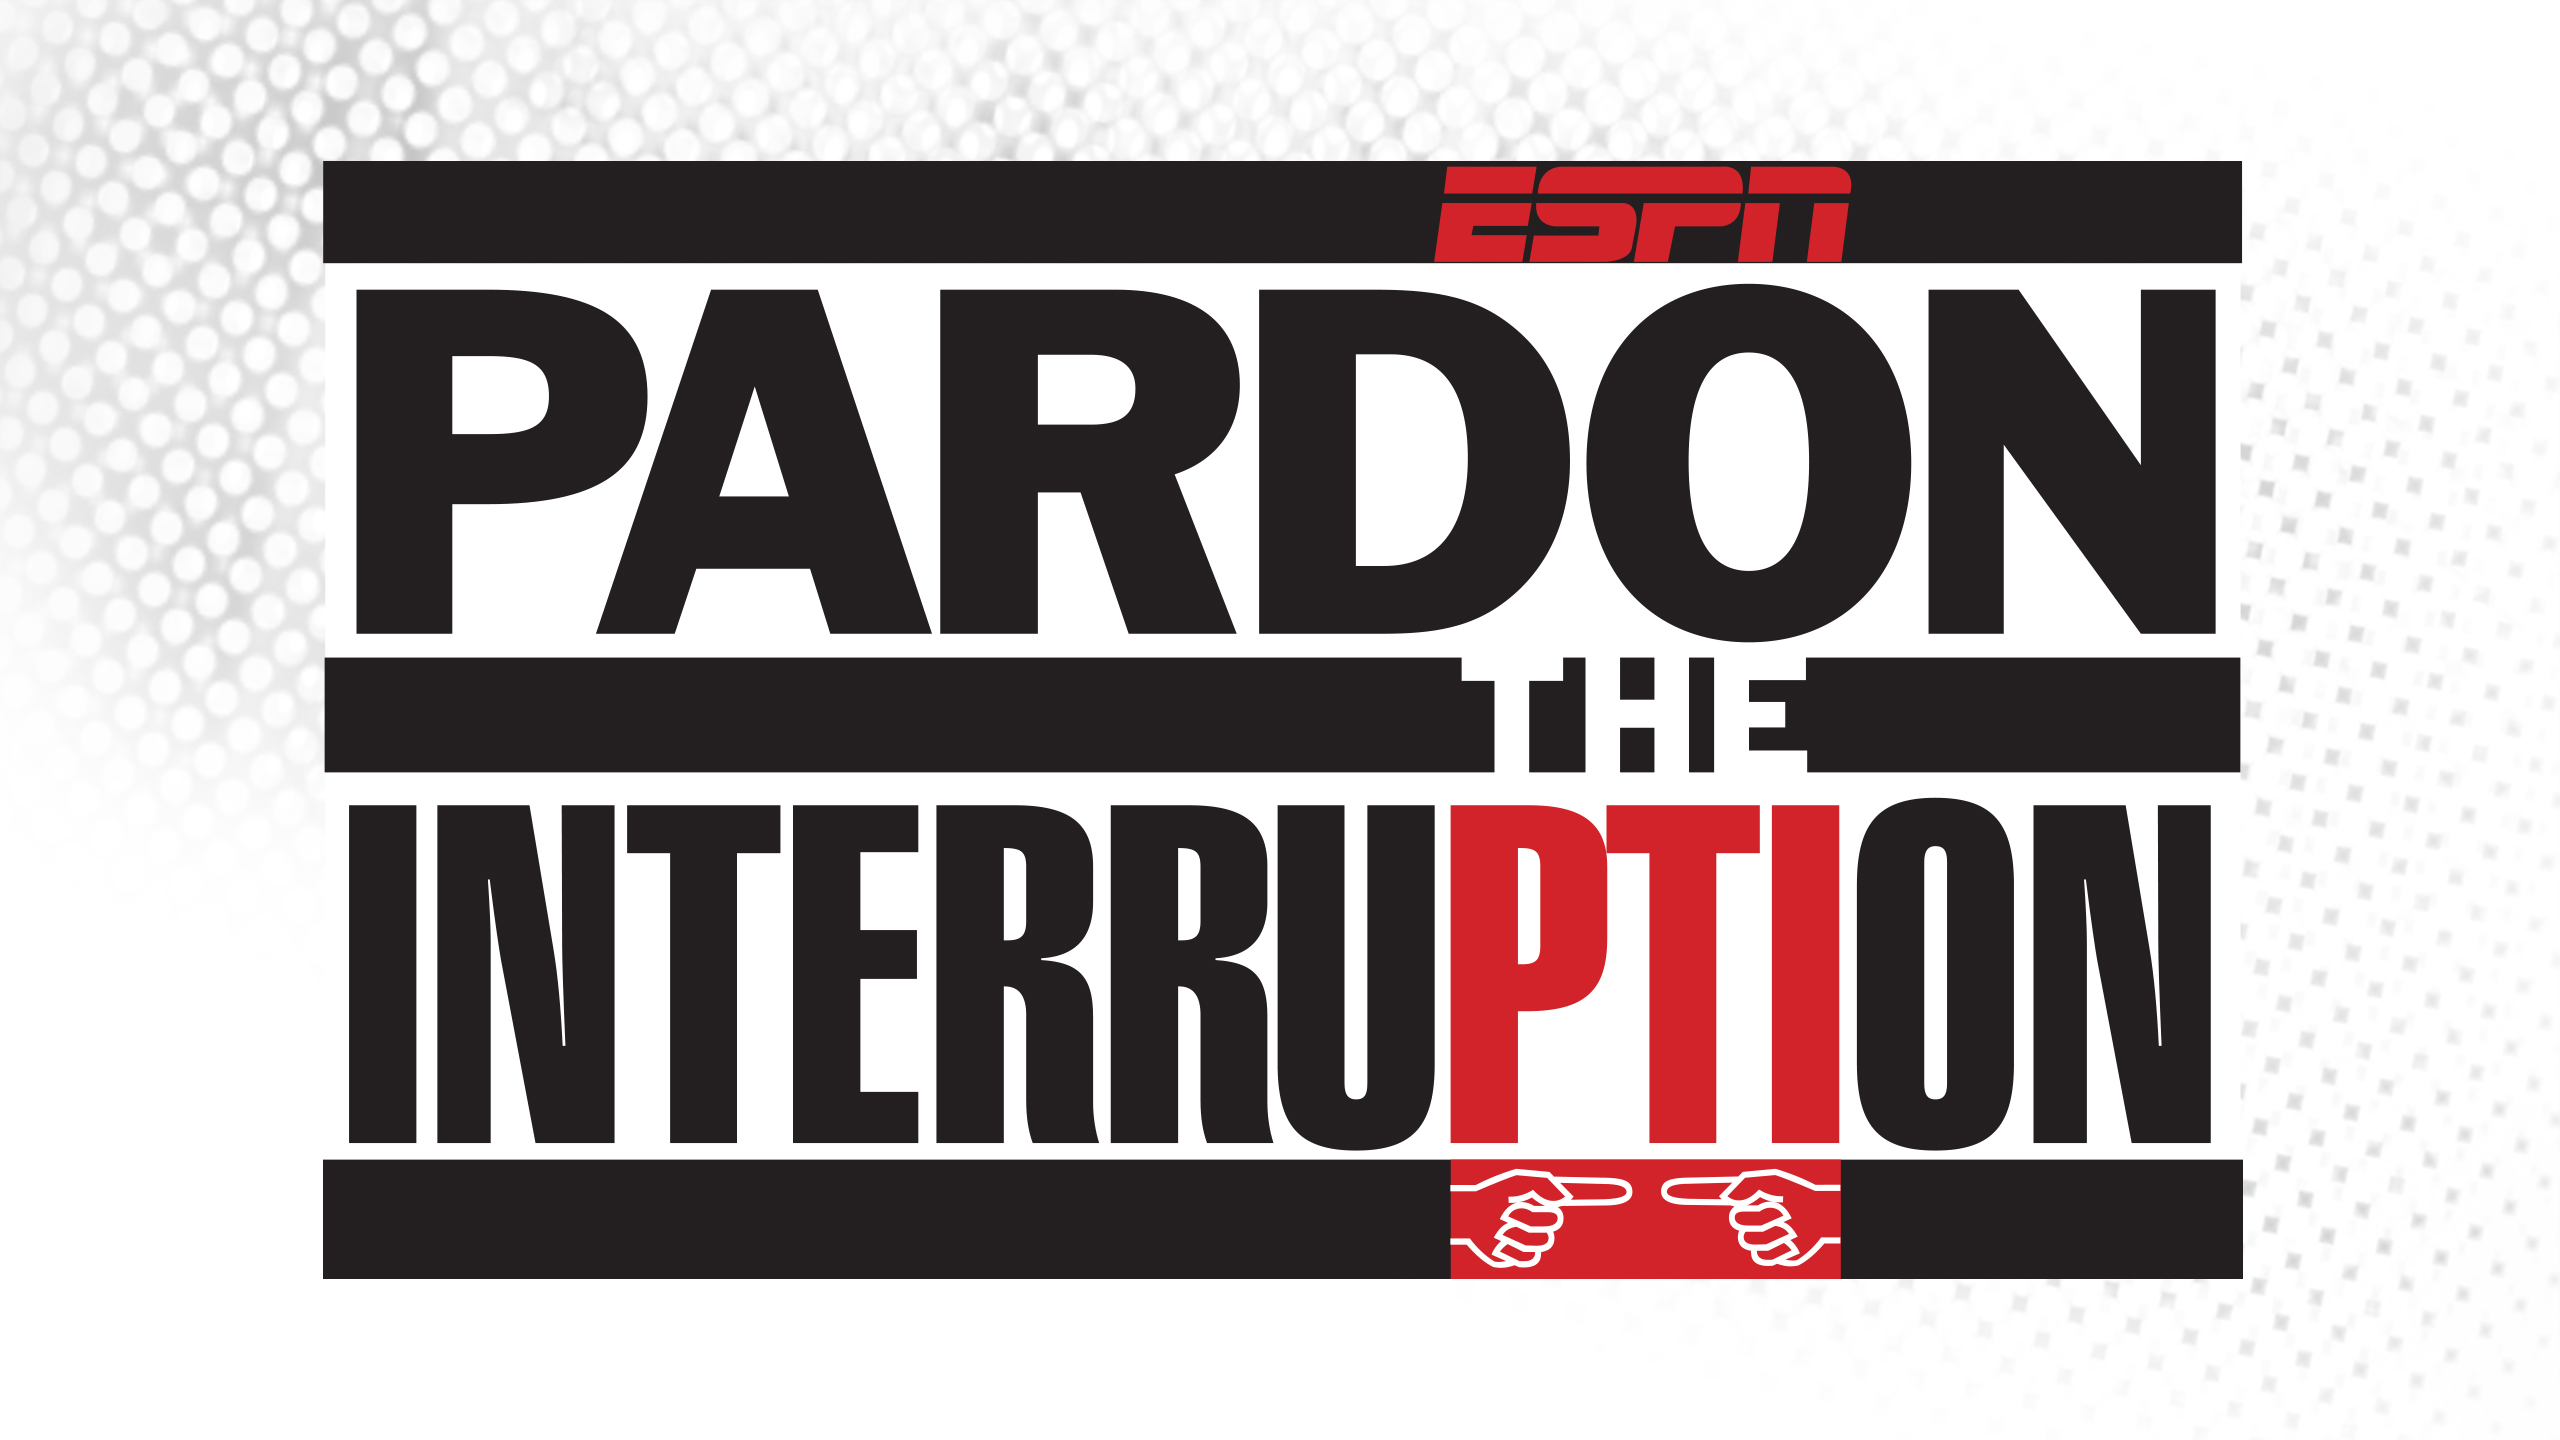 Mon, 12/10 - Pardon The Interruption